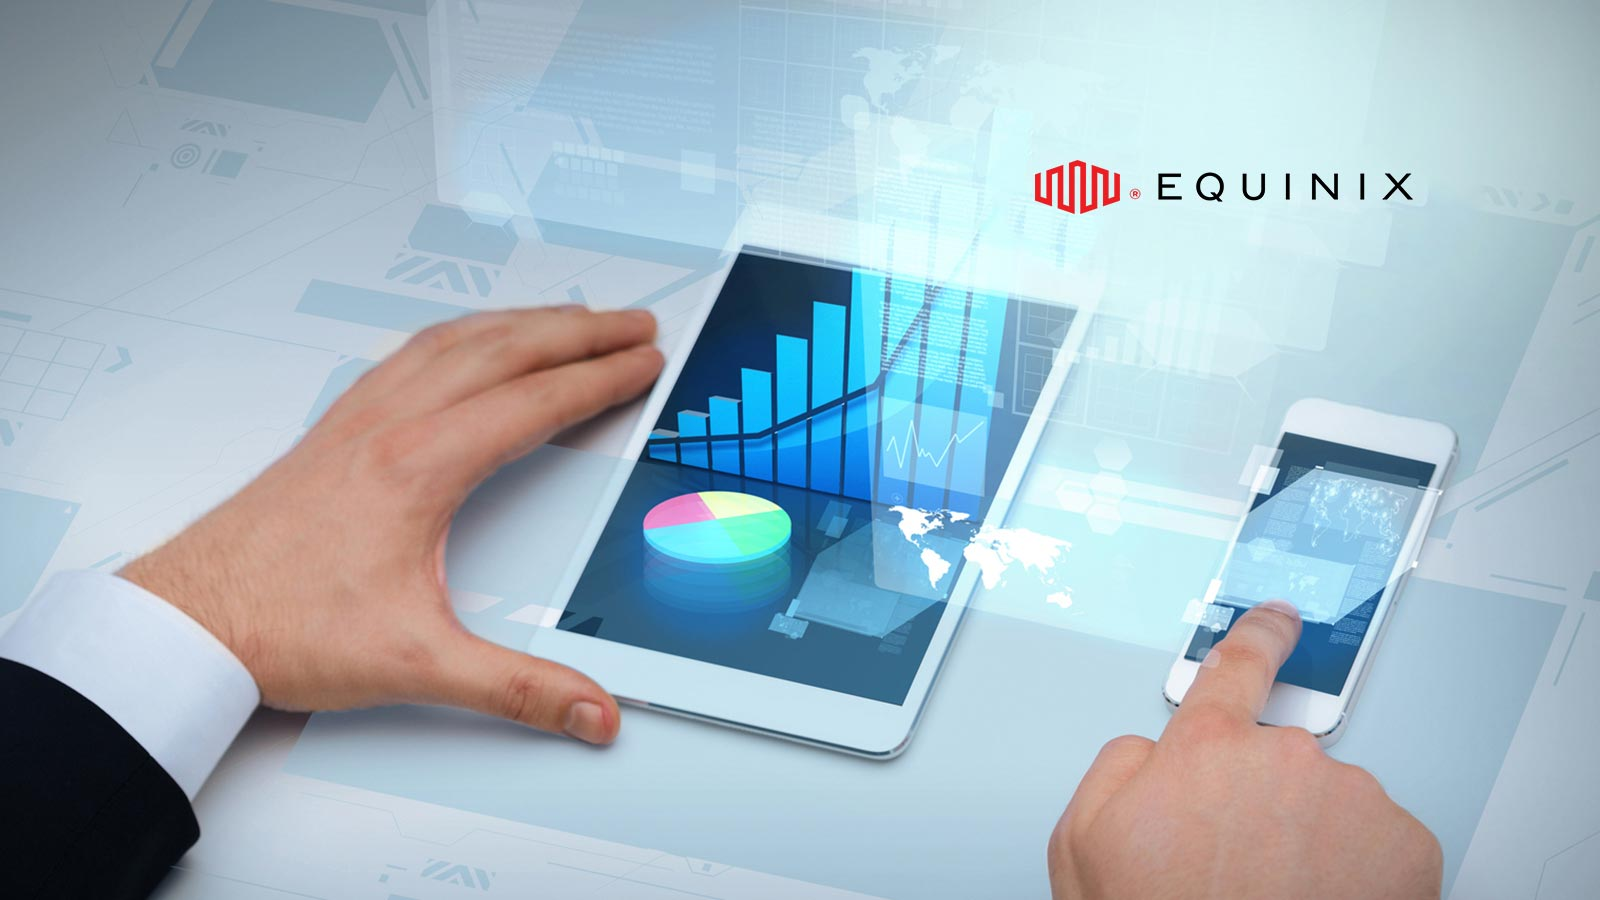 Equinix Triples Investment in Cloud Native Computing Foundation to Fuel Open Source Innovation.